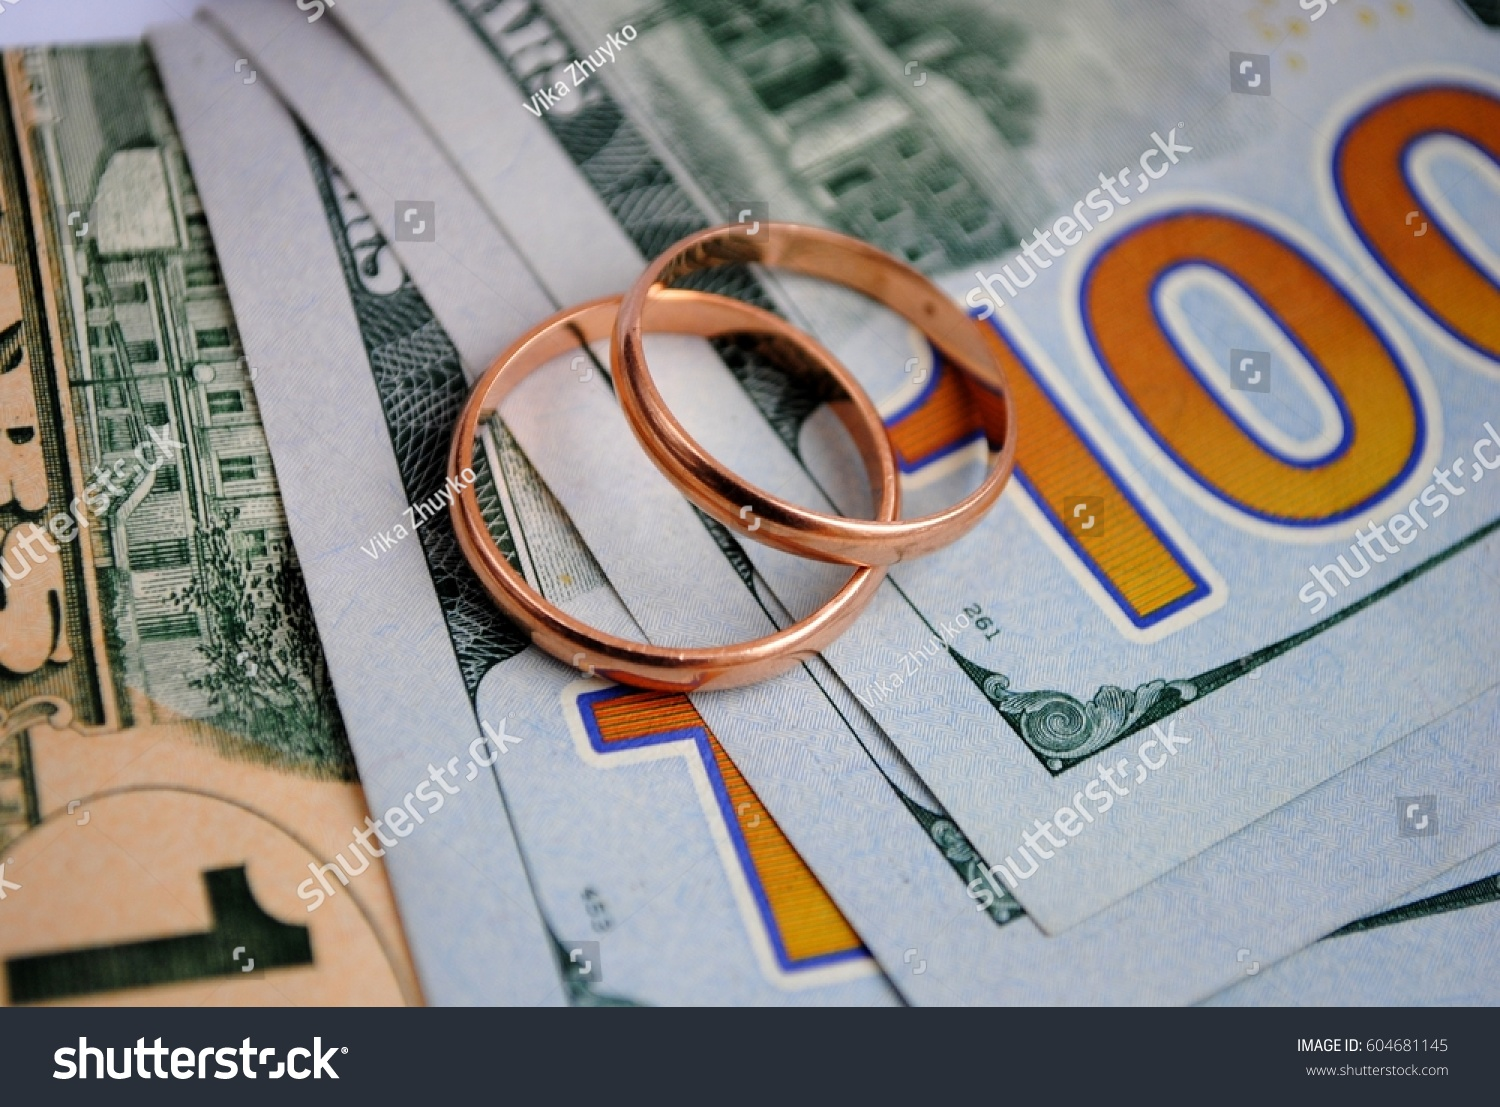 Marriage contract stock photo 604681145 shutterstock marriage contract buycottarizona Gallery